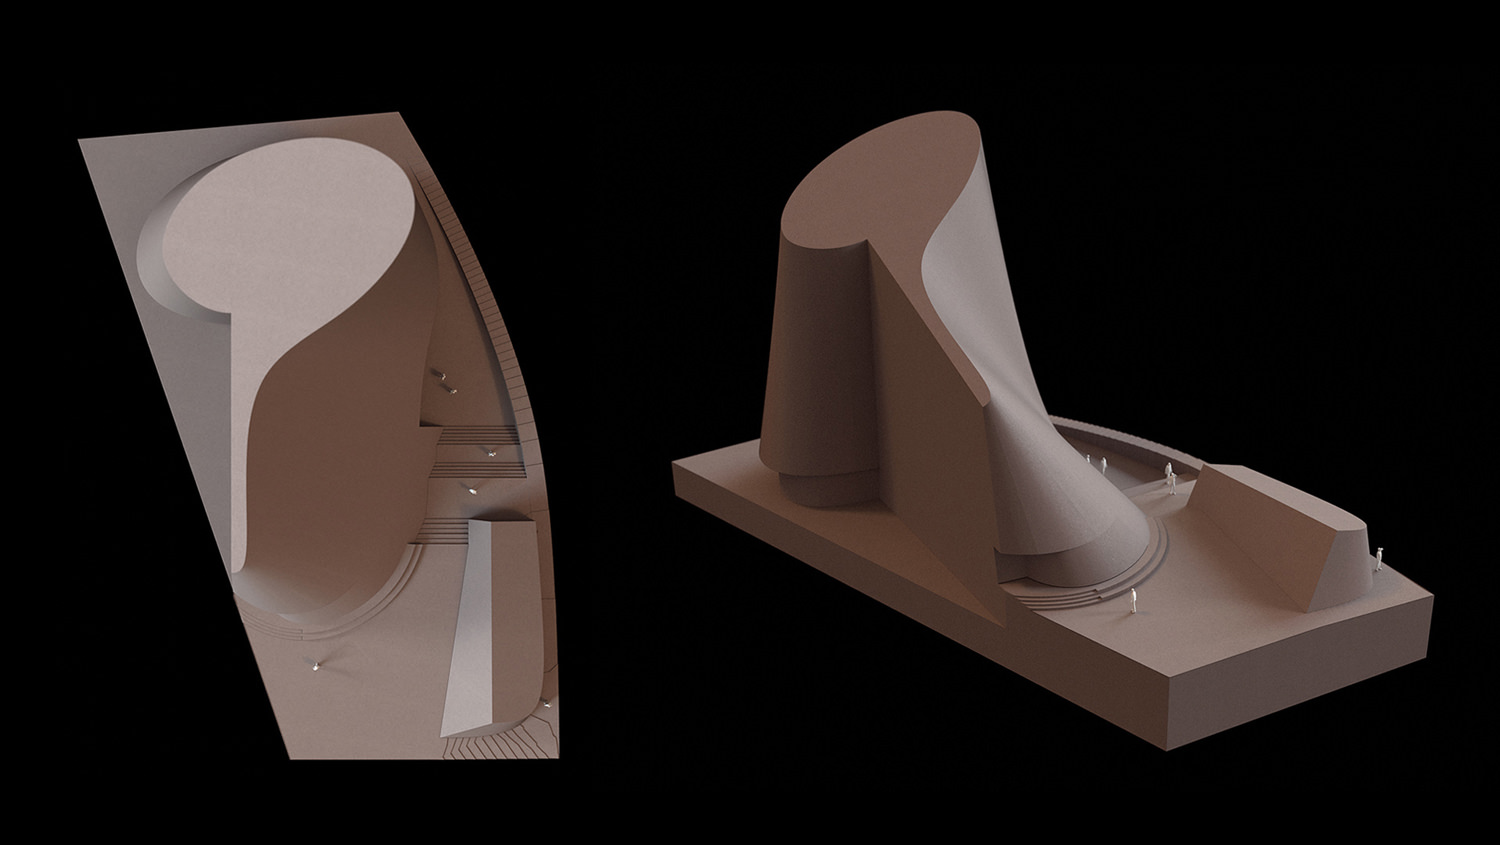 new-valer-church-model-overview-joerg-hugo.jpg